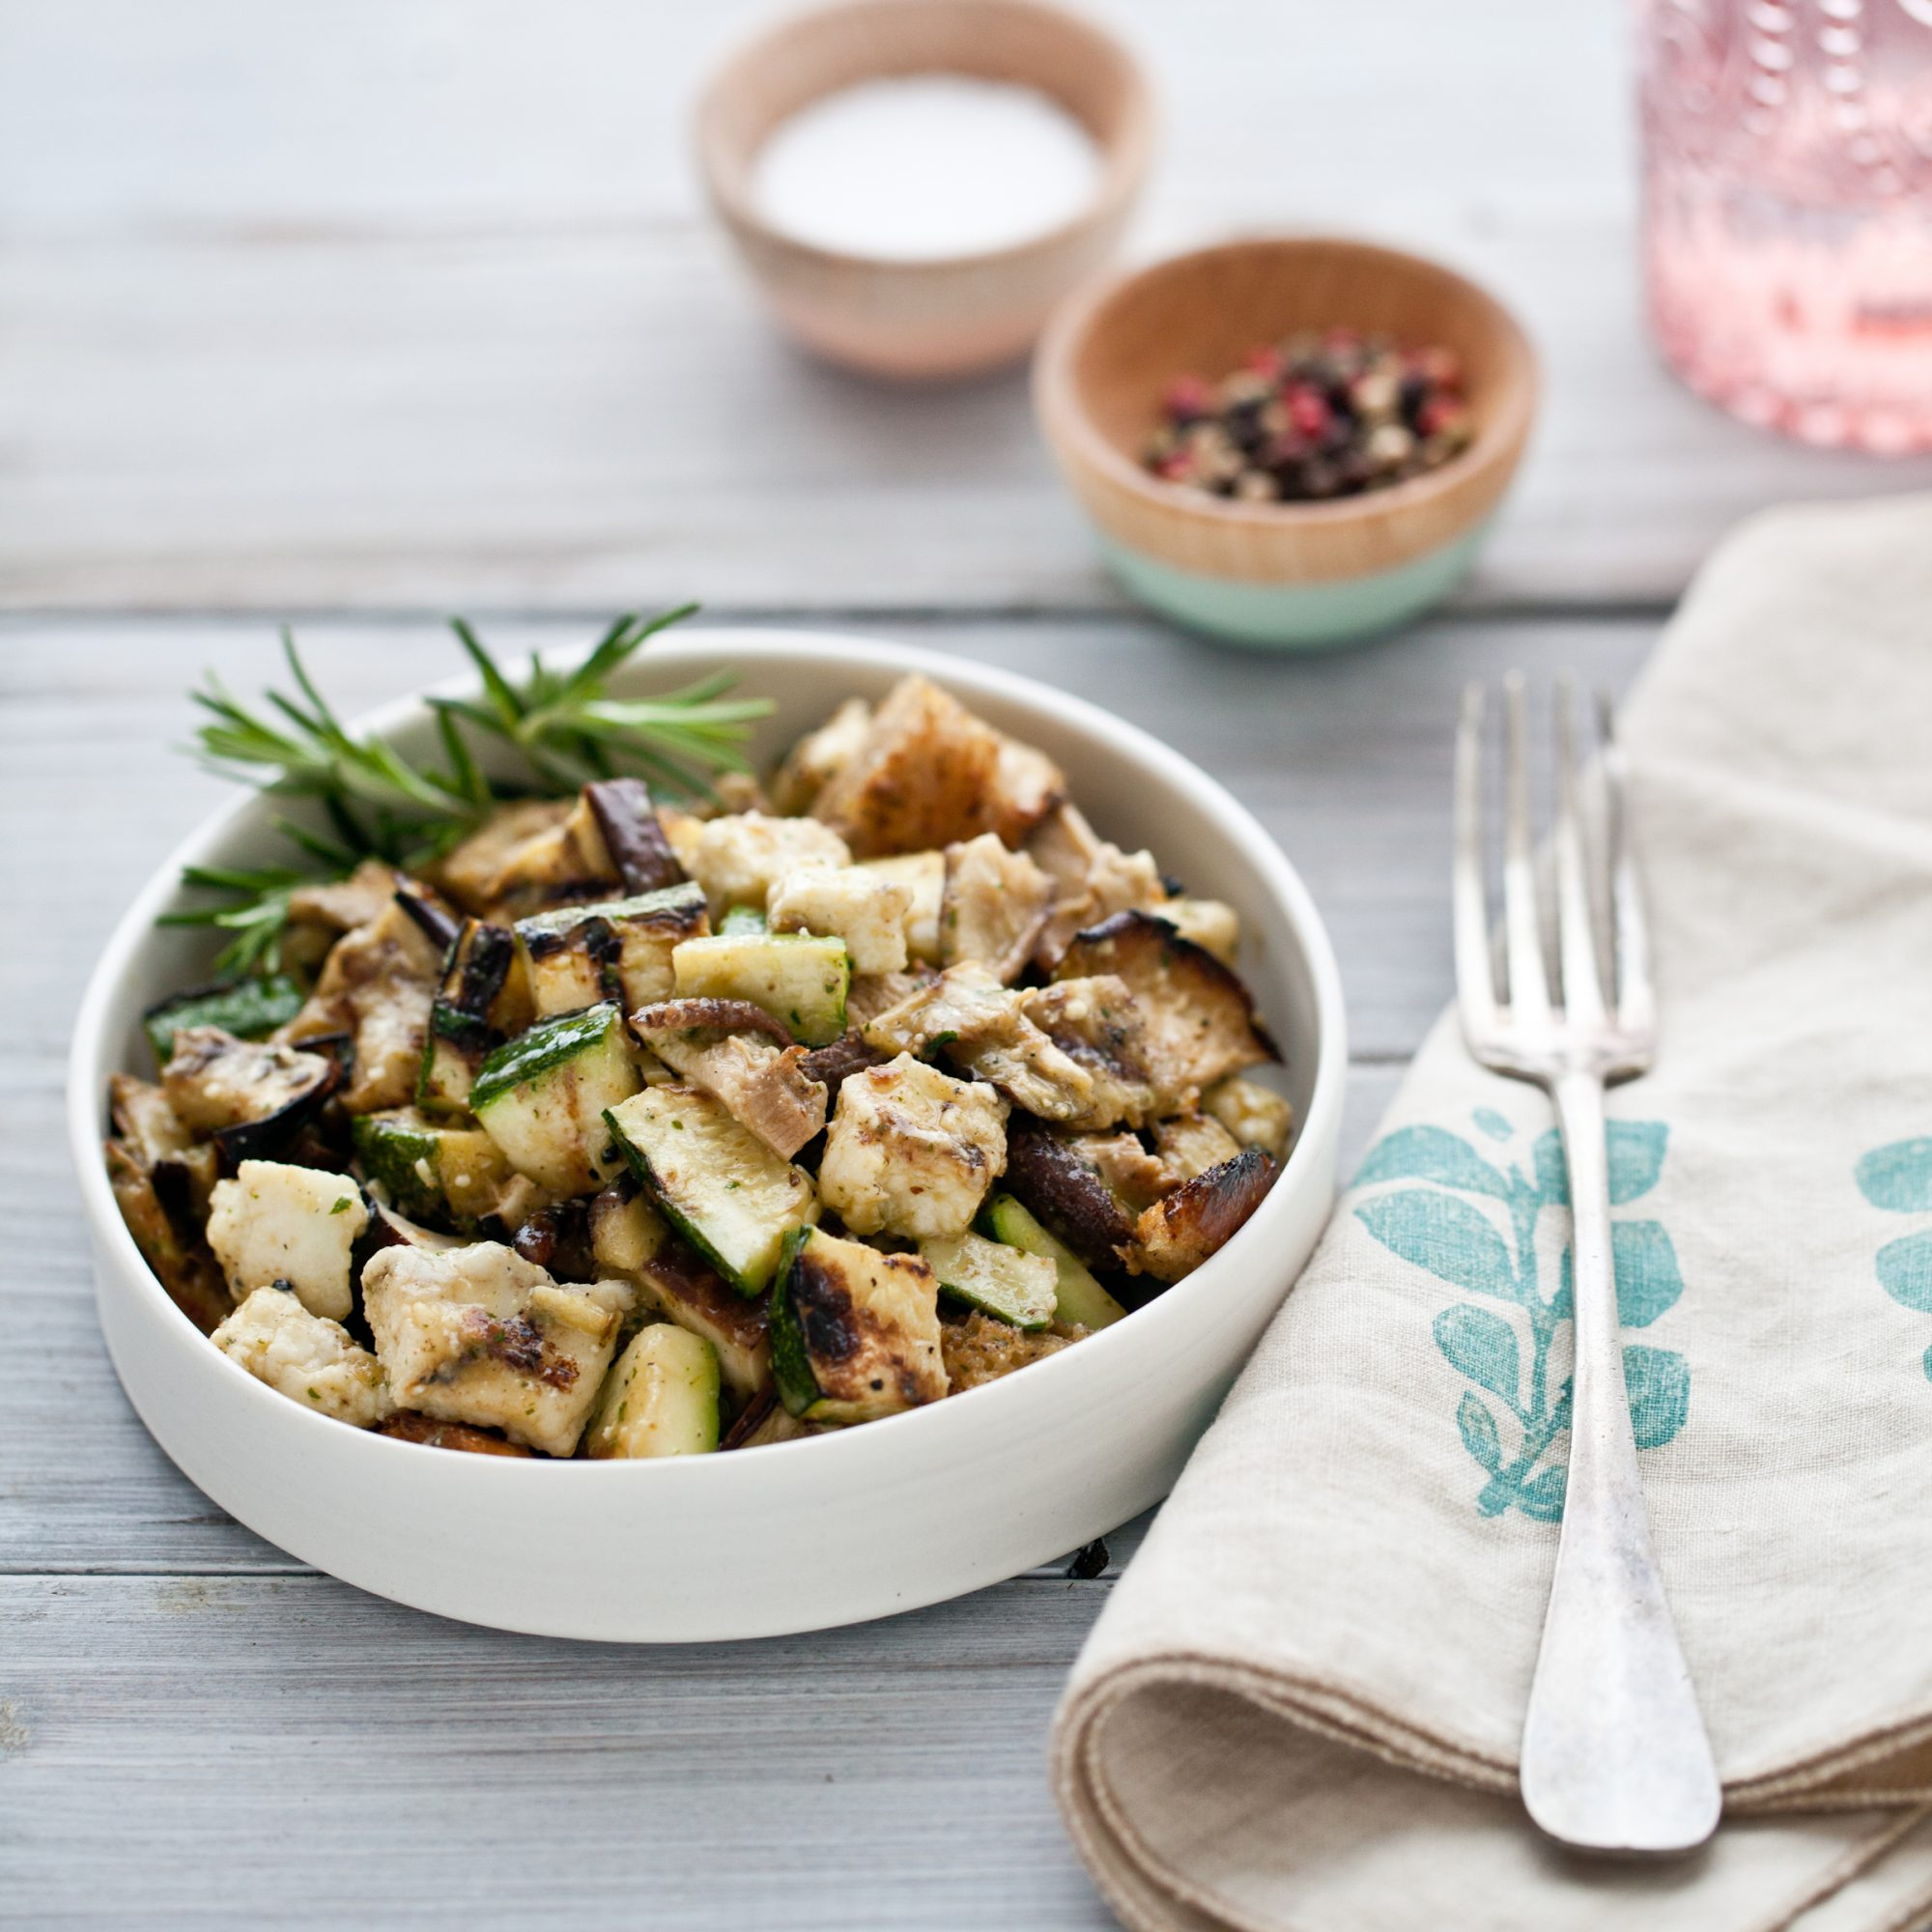 Grilled Vegetable Salad with Croutons, Haloumi and Anchovy Sauce